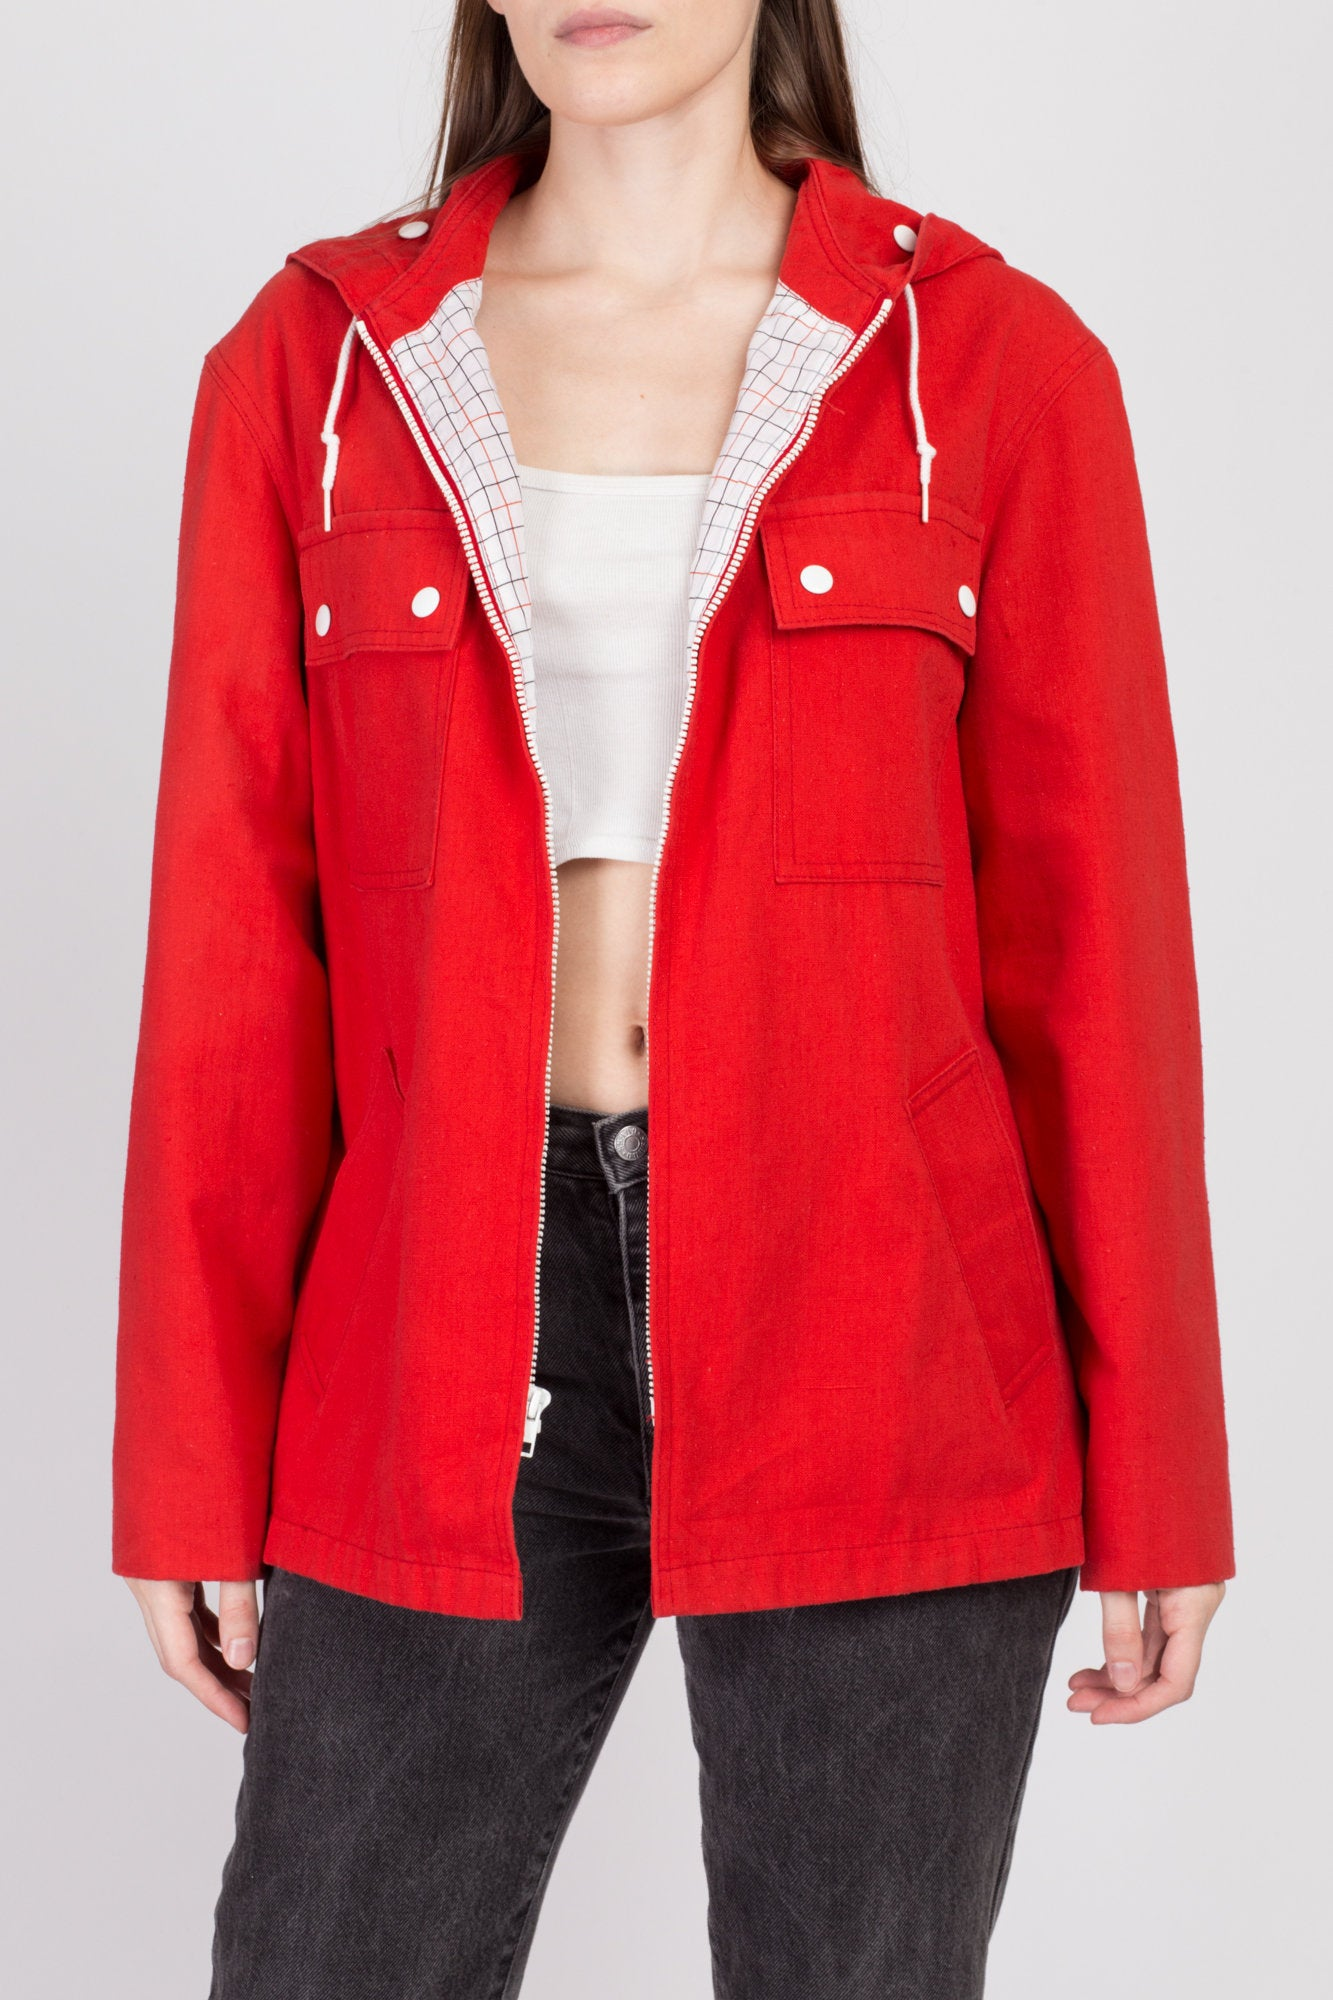 80s Red Hooded Lightweight Jacket - Large